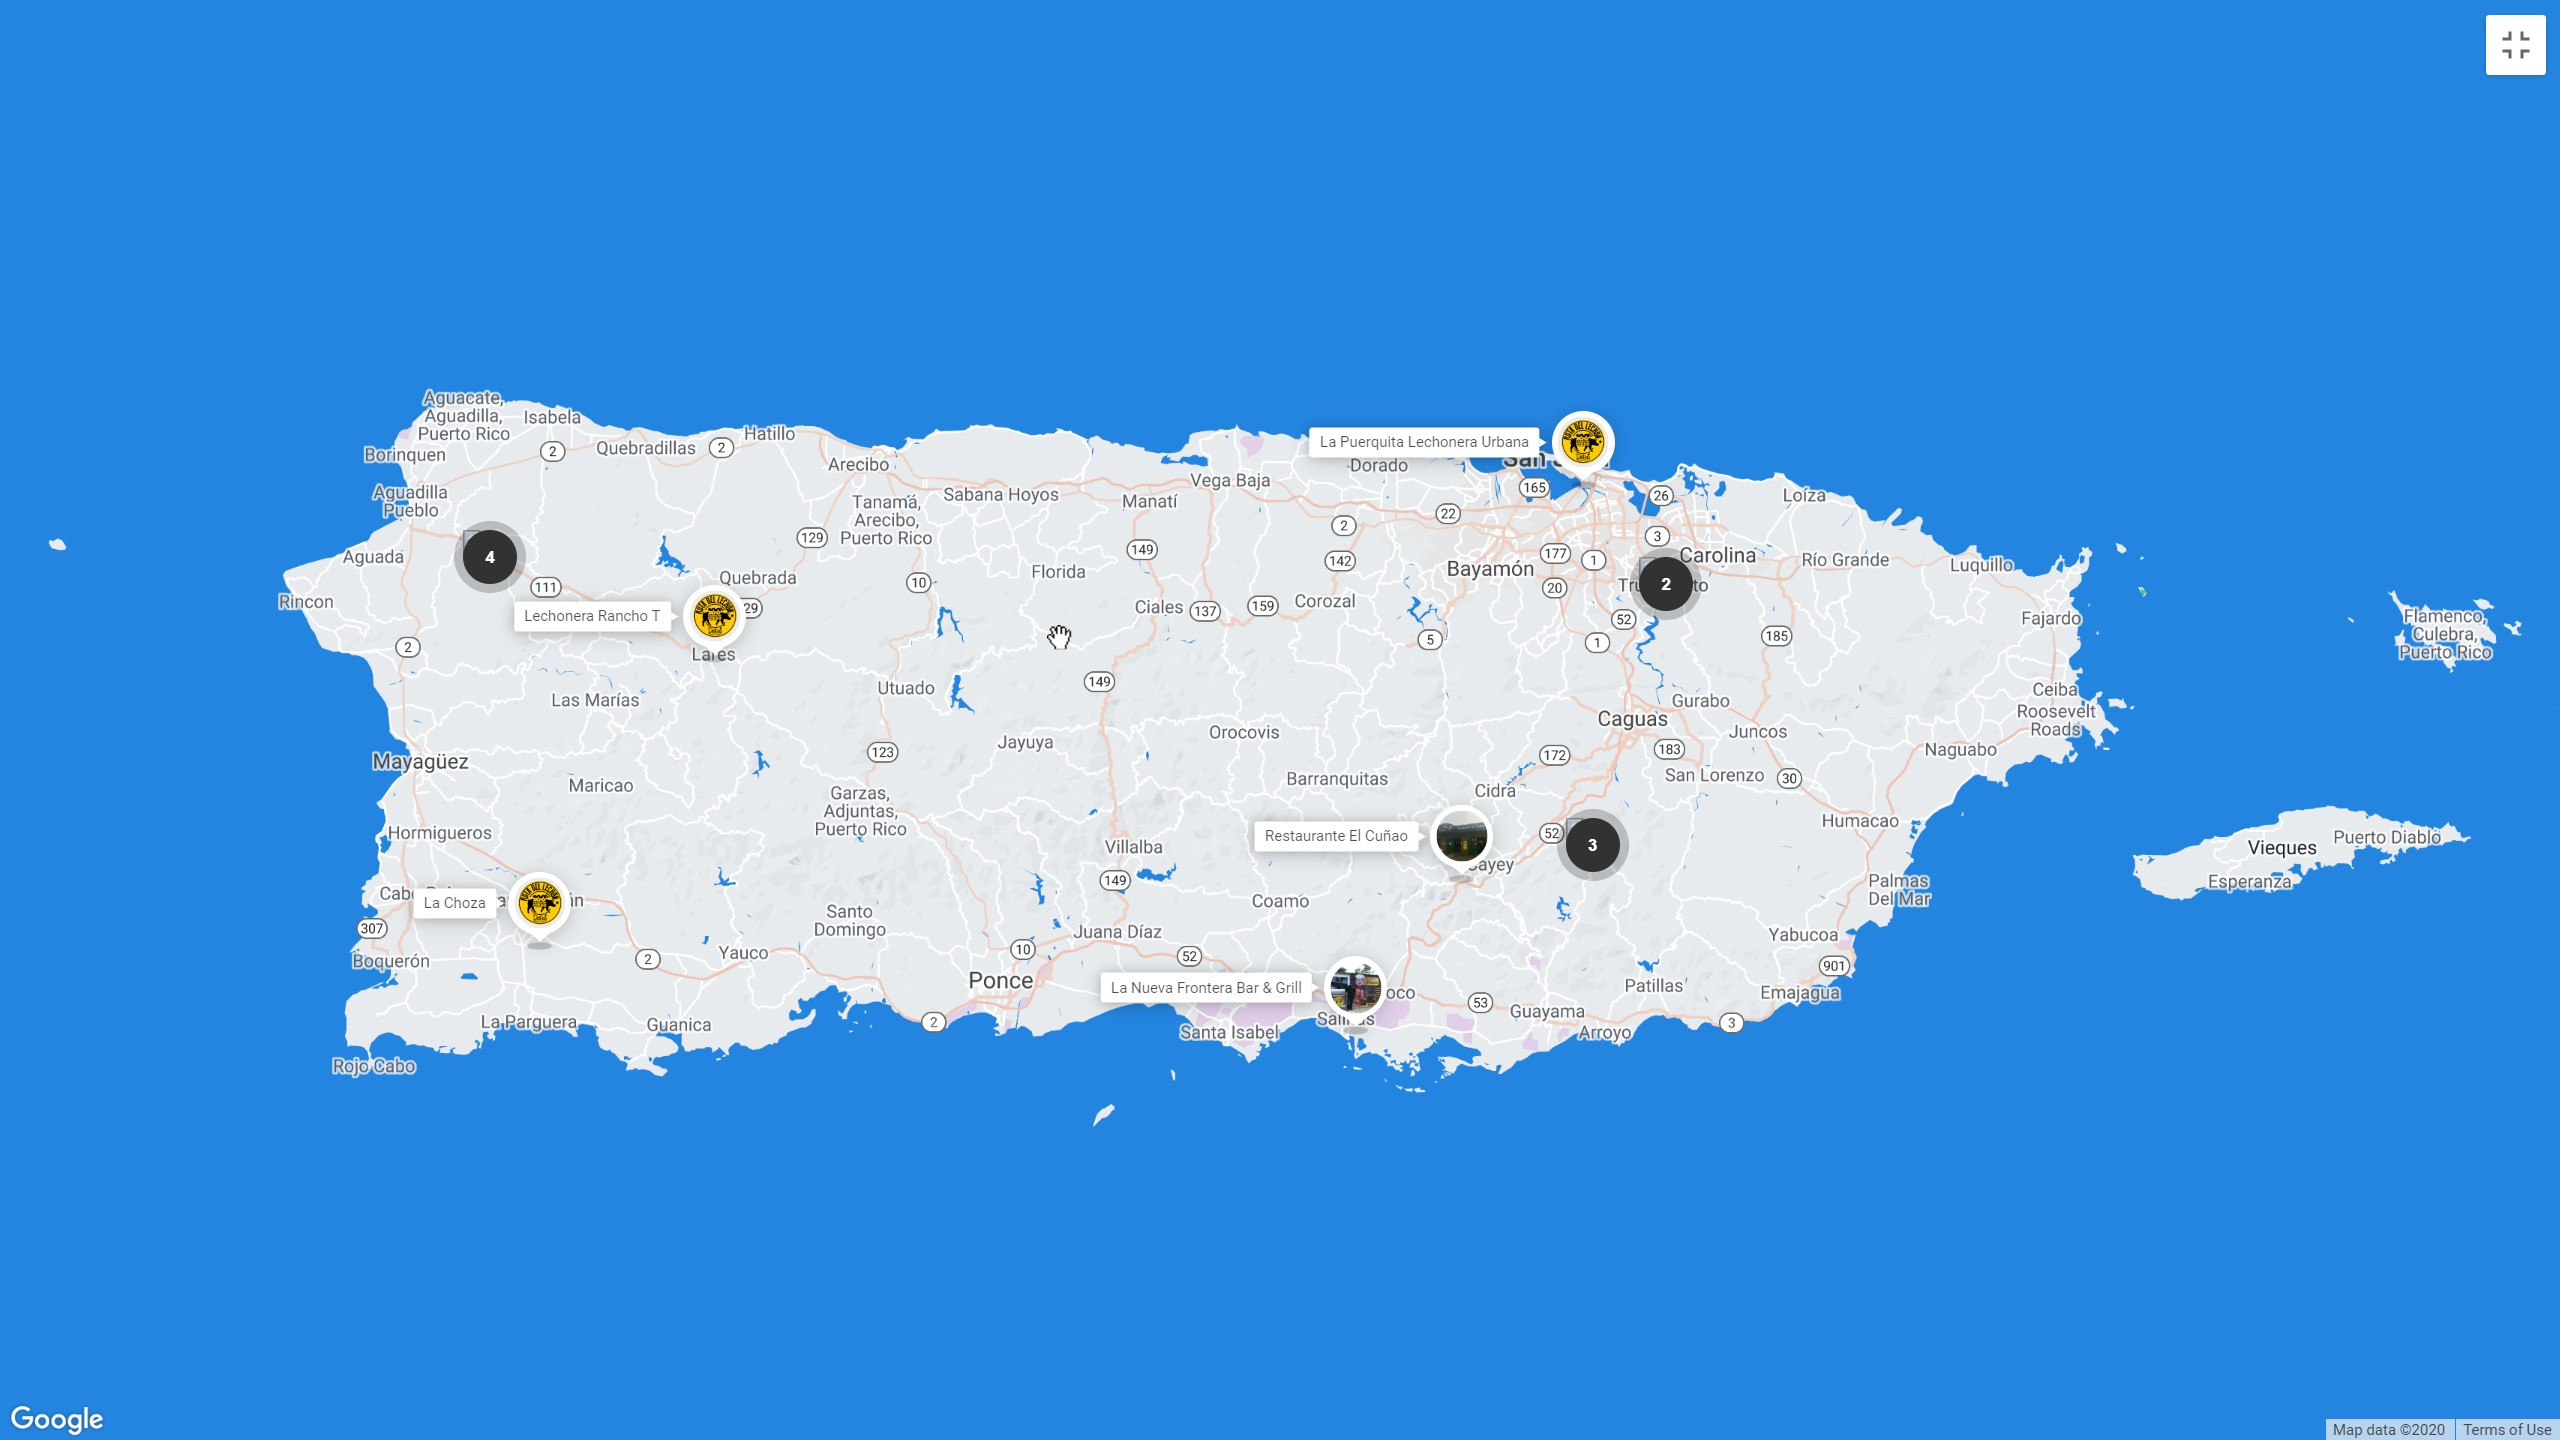 To this date, there are fourteen restaurants that are part of the National Roast Pork Route. You can search through the map by entering the link of the official route website.